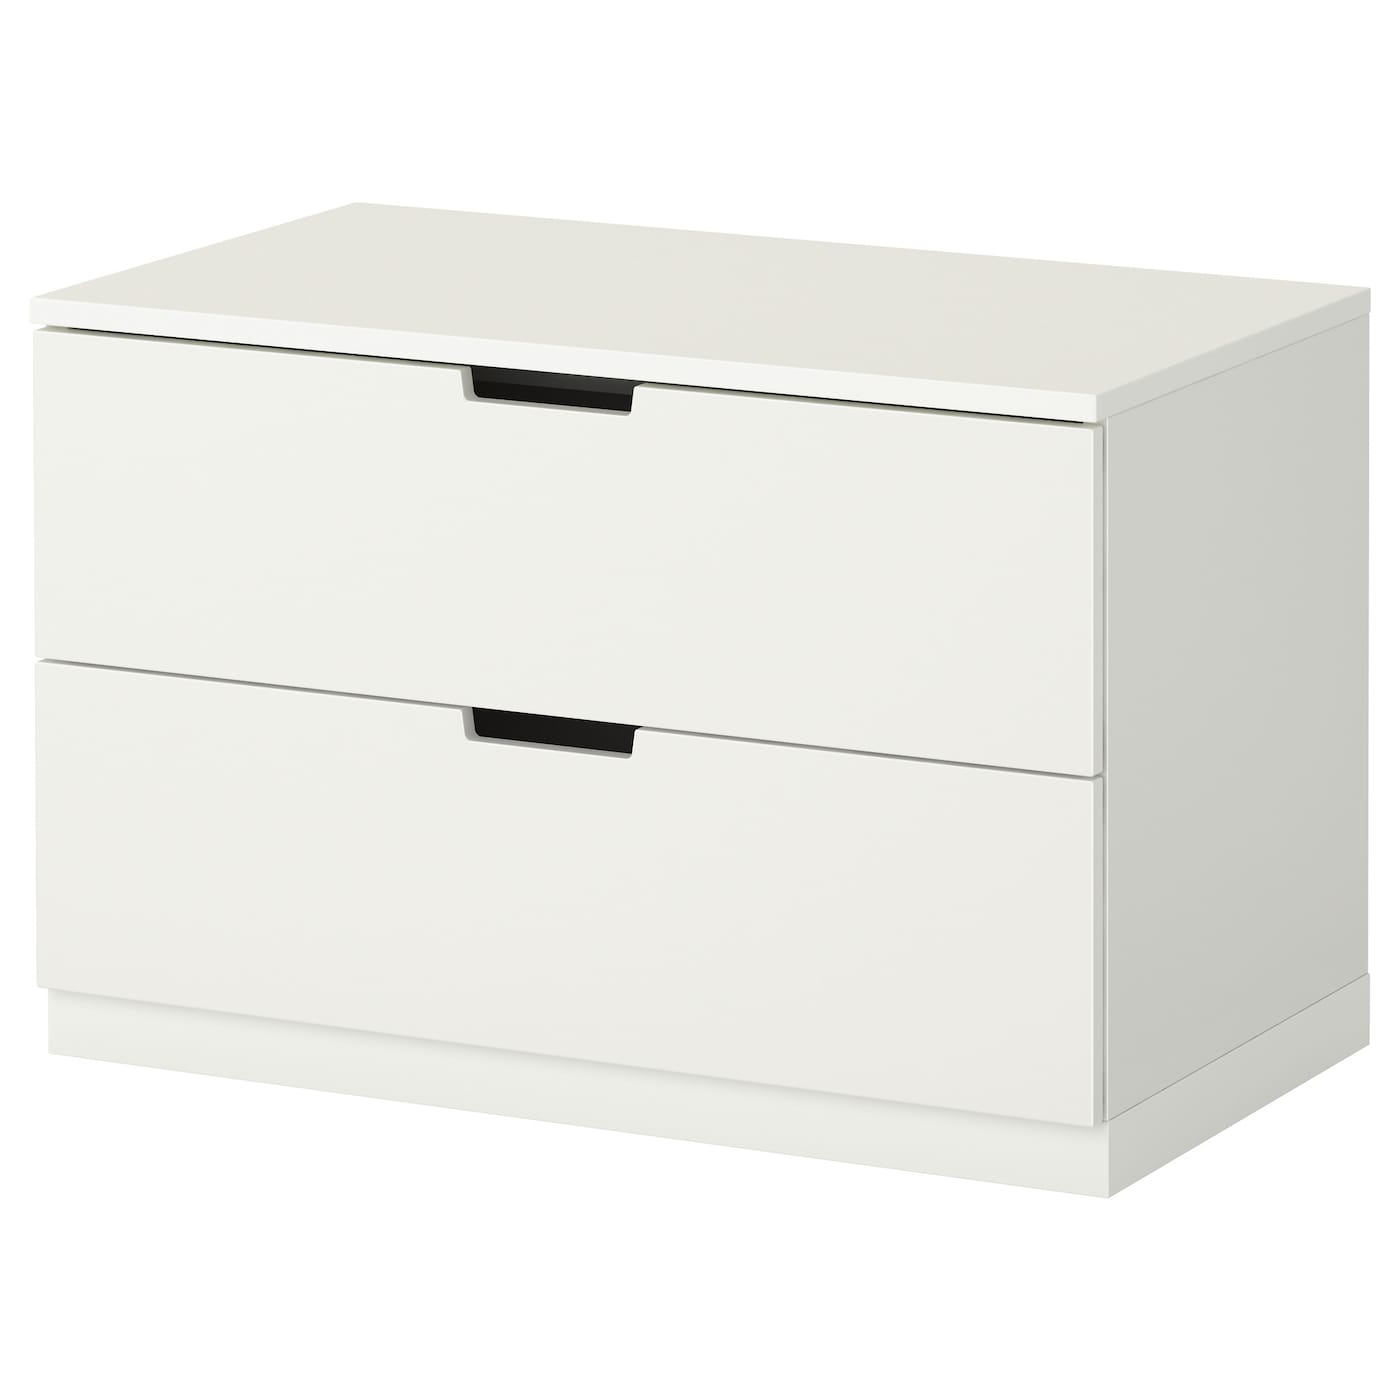 Chest of drawers dressers ikea for Kommode 100 x 60